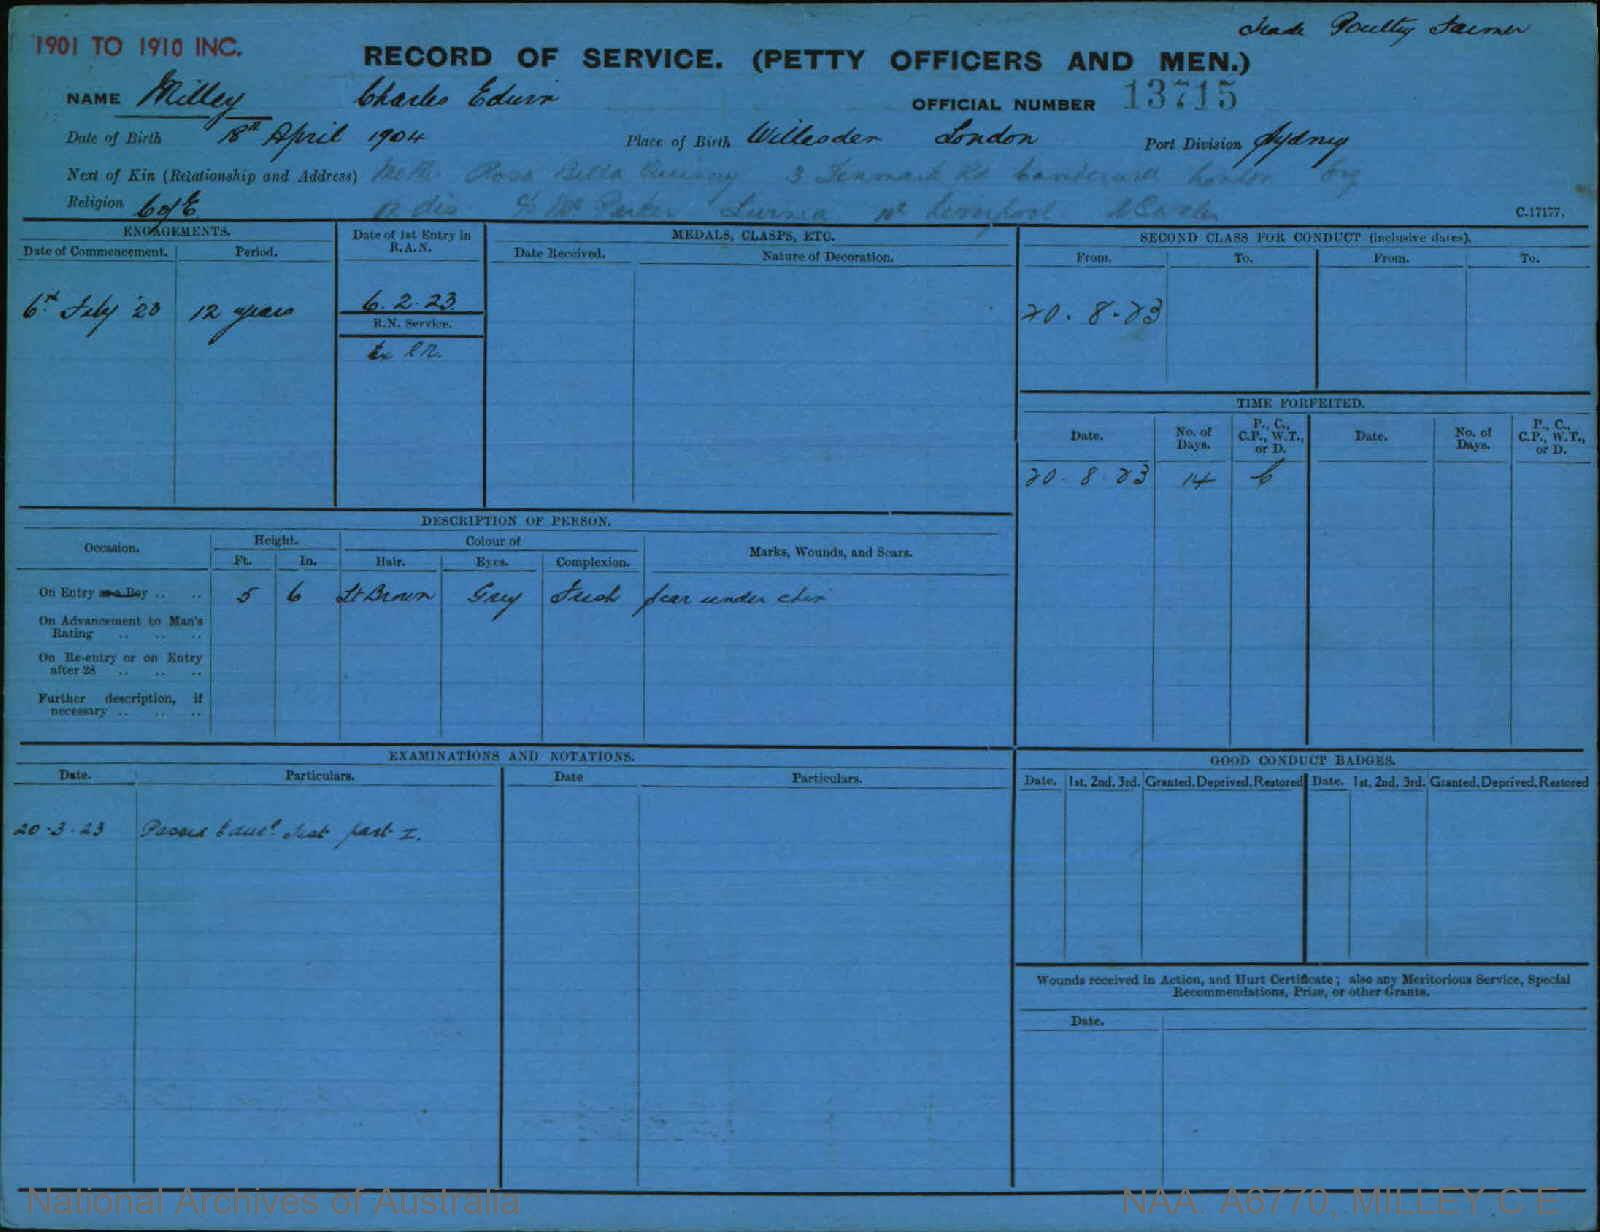 MILLEY CHARLES EDWIN : Service Number - 13715 : Date of birth - 18 Apr 1904 : Place of birth - WILLESDER : Place of enlistment - SYDNEY : Next of Kin - QUINCEY ROSA